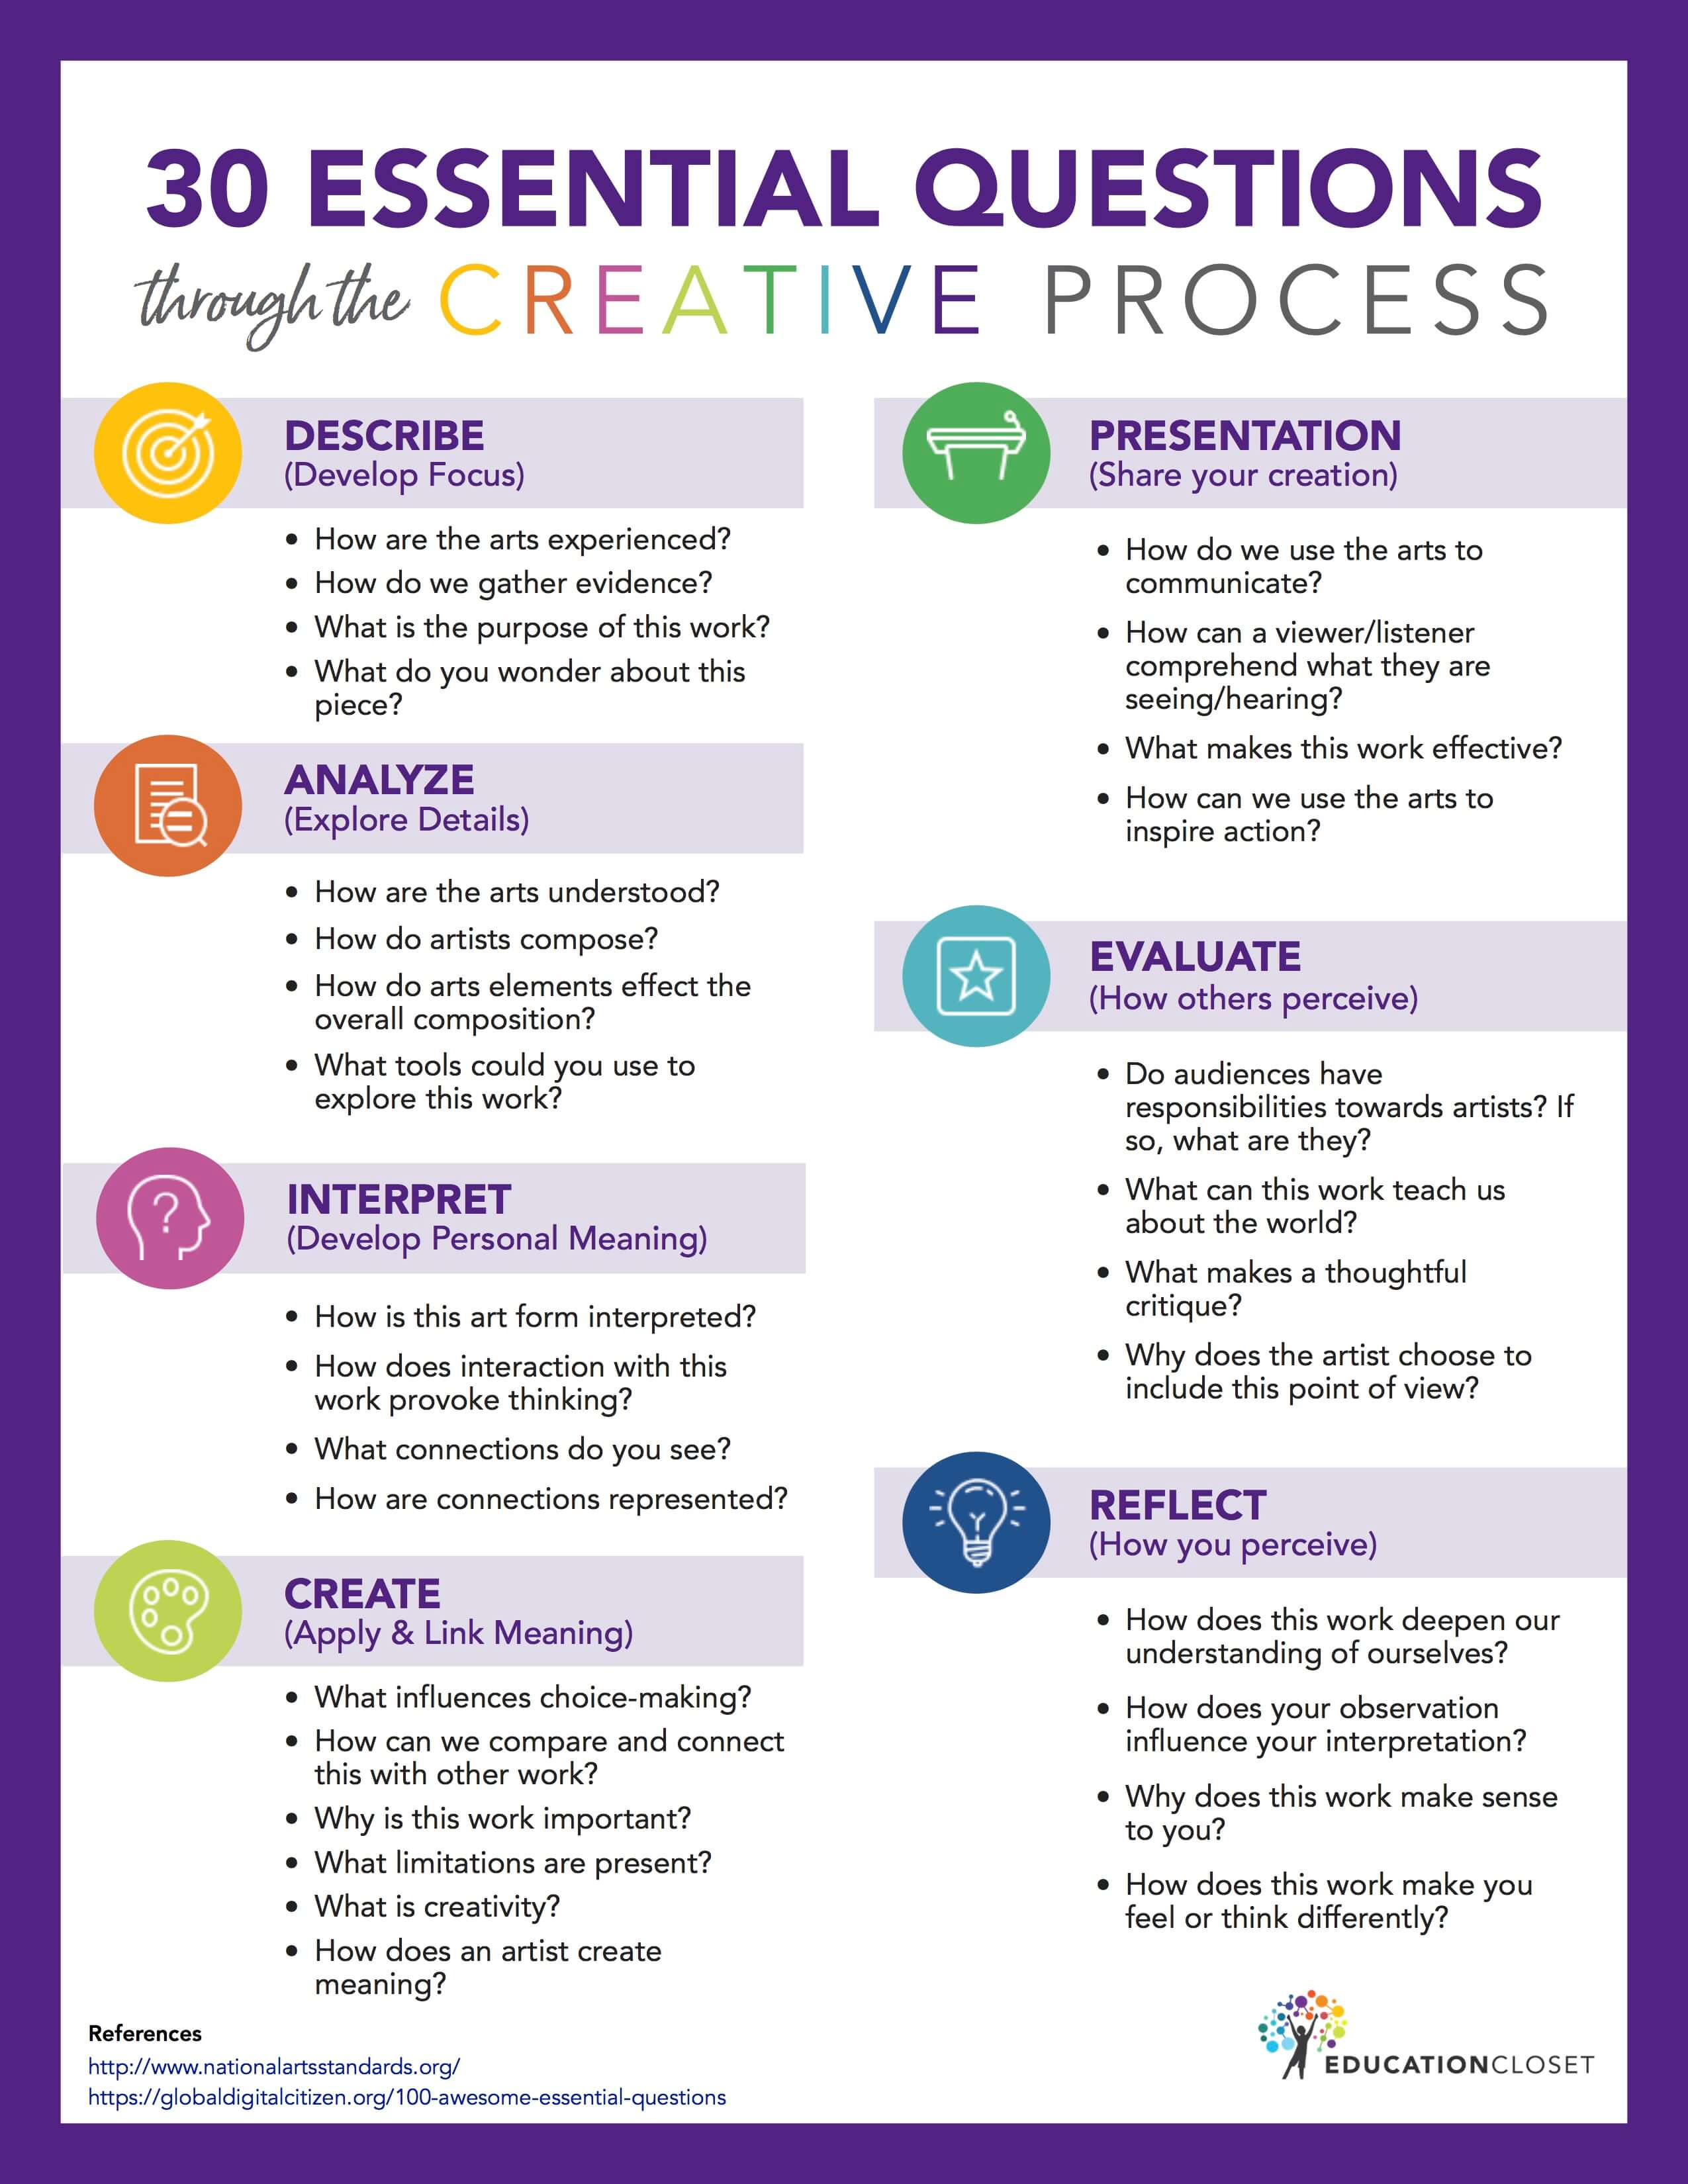 30 Essential Questions Through The Creative Process